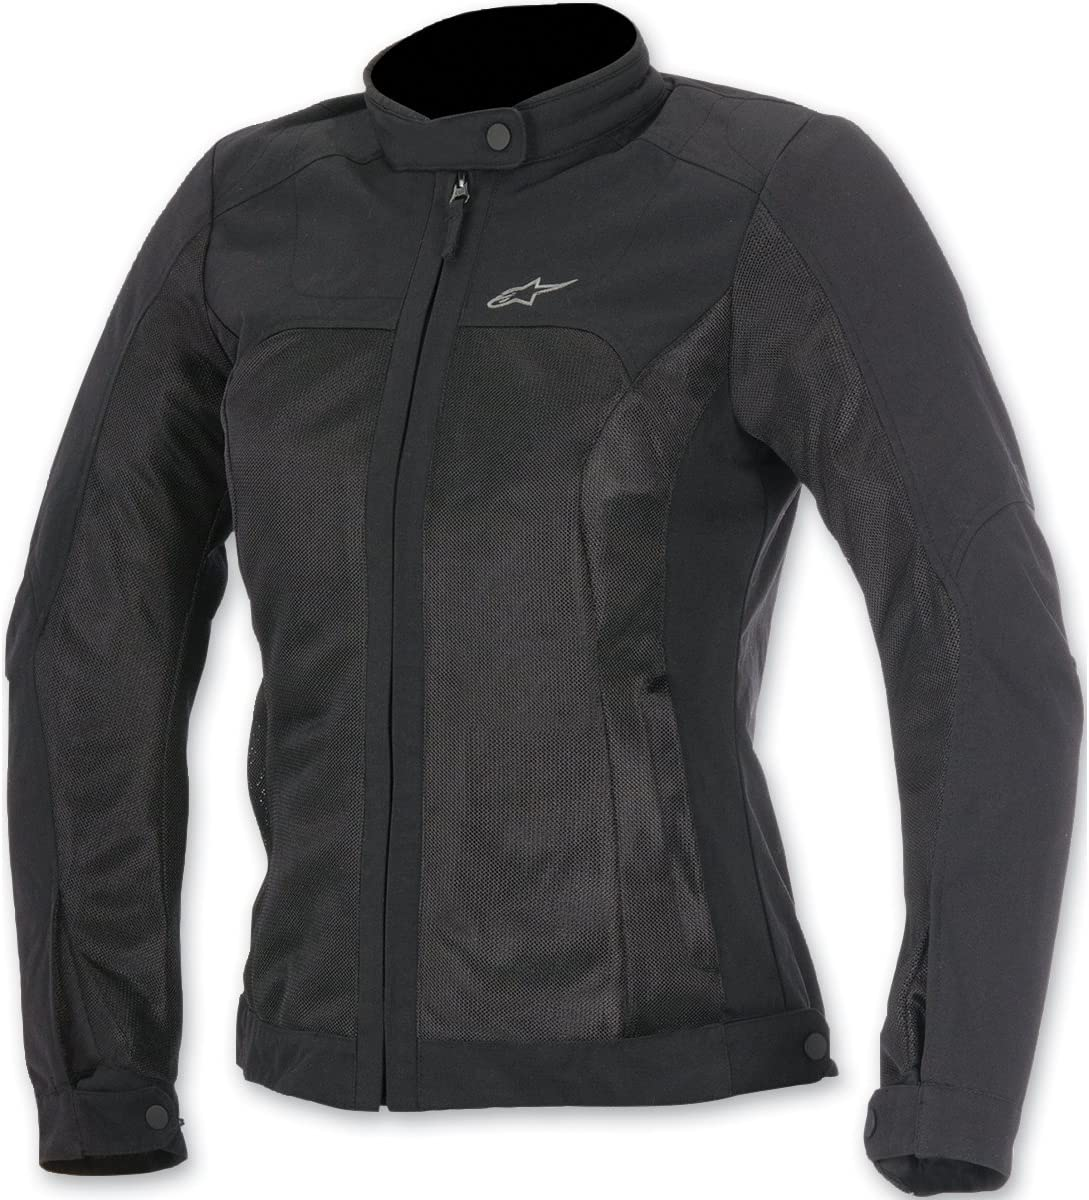 Black, Small Alpinestars Eloise Air Womens Riding Jacket